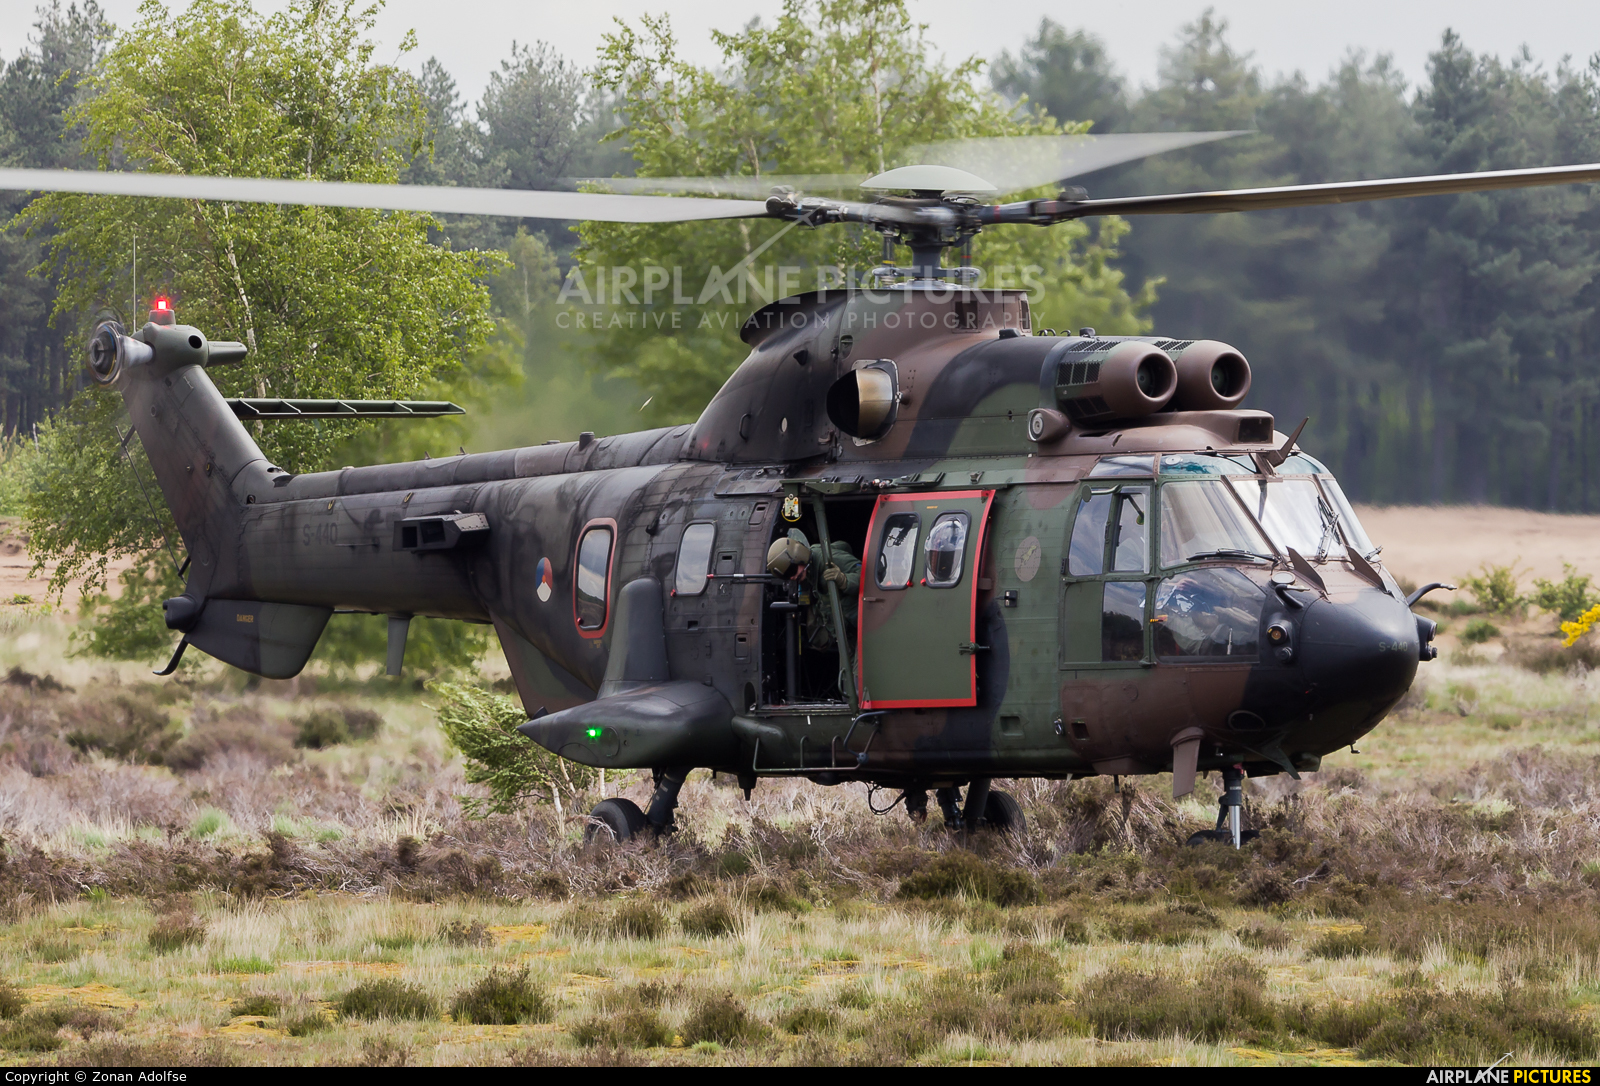 Netherlands - Air Force S-440 aircraft at GLV-5 Training area